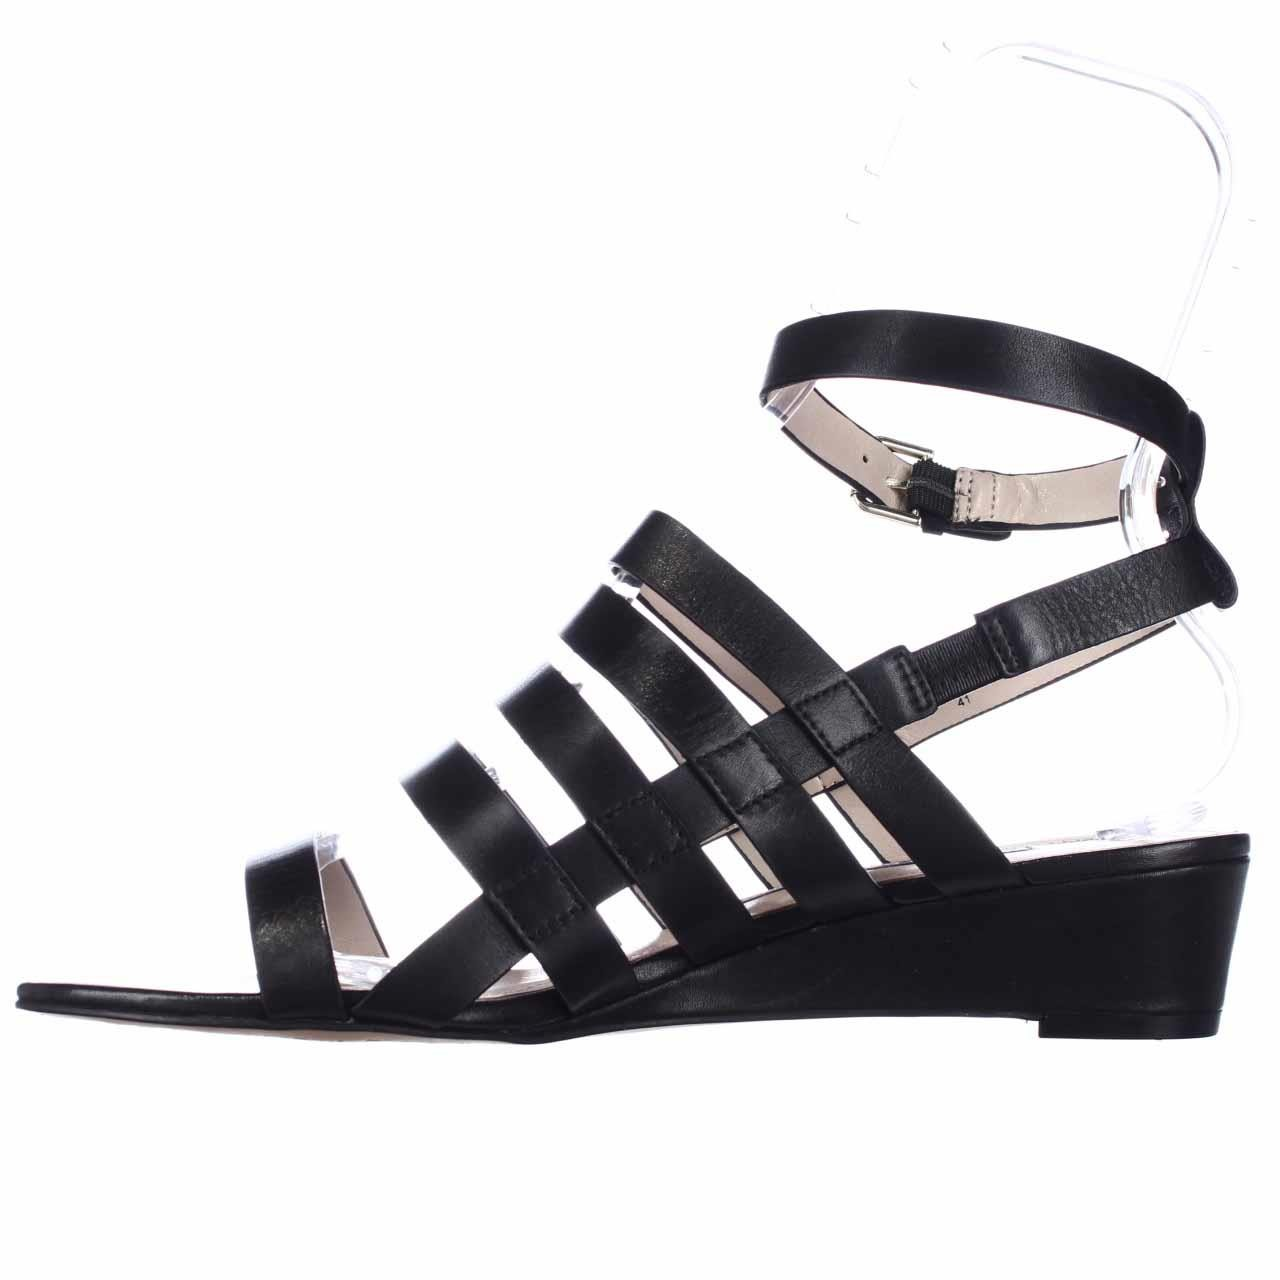 944092f8c74 Details about French Connection WINONA Womens Wedged Sandals Black Black  Black 8.5 US   6.5 U